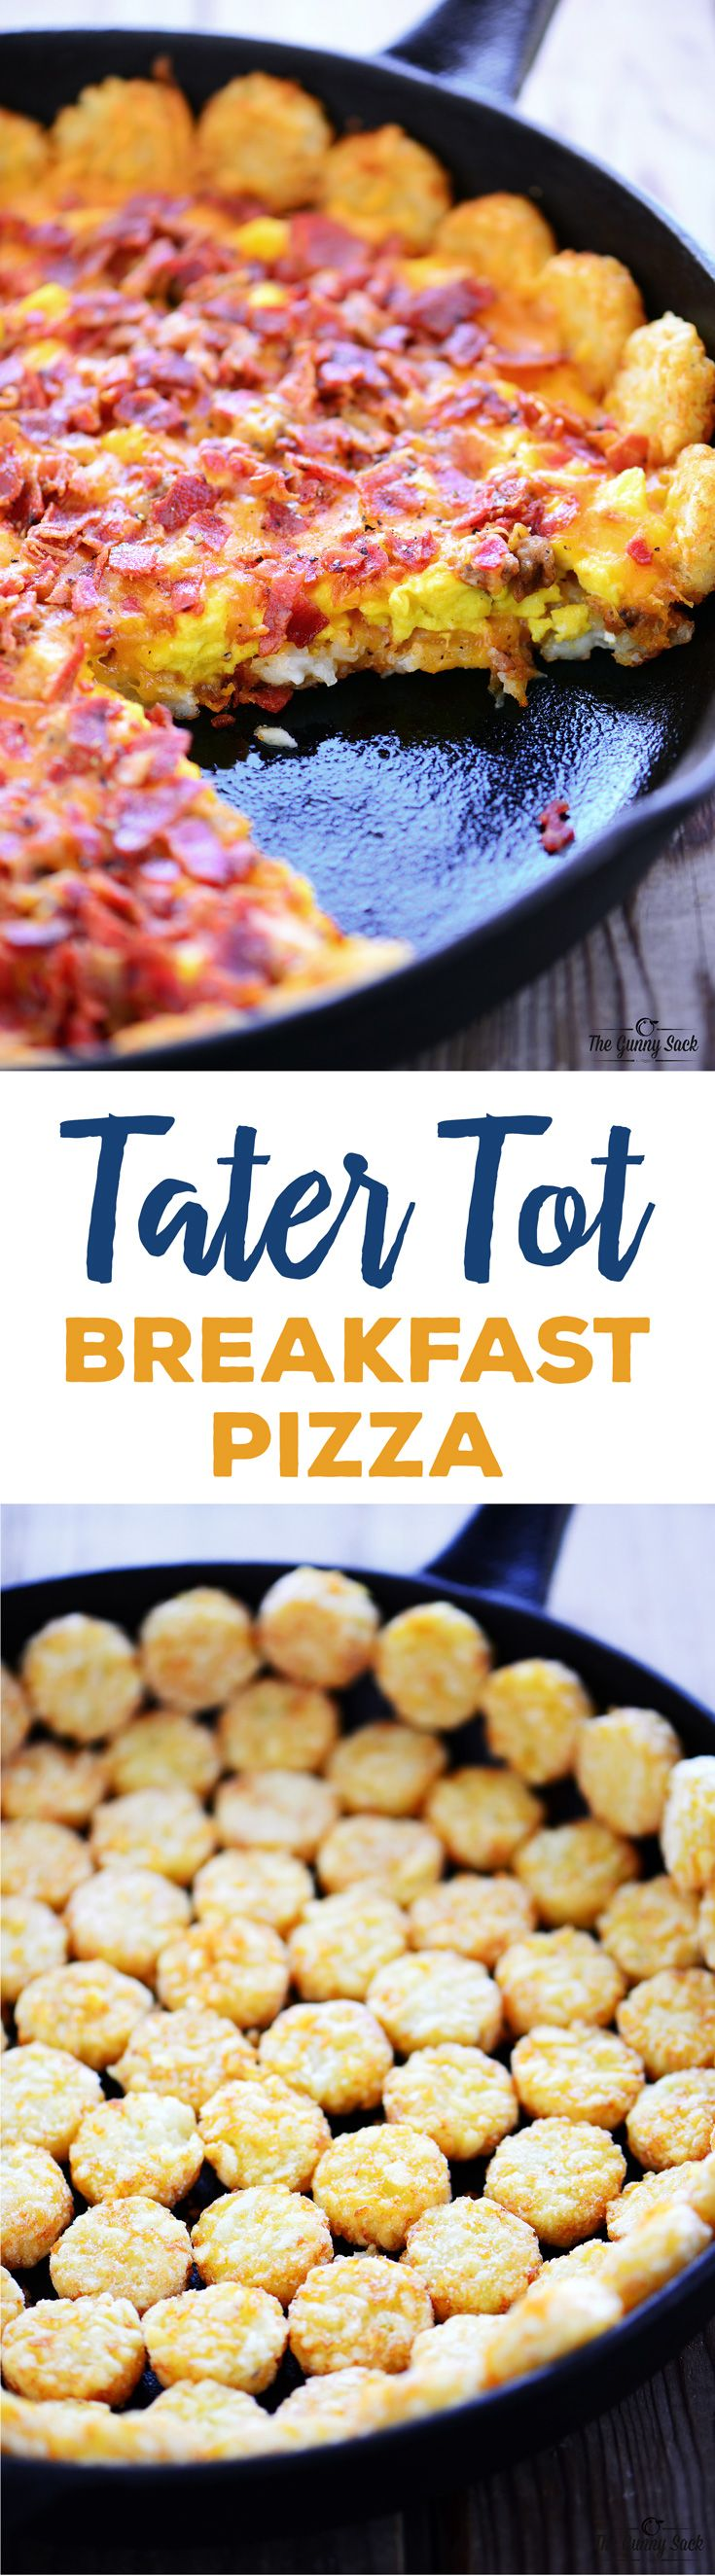 Tater Tot Breakfast Pizza recipe with crispy potatoes, scrambled eggs, melted cheese, crispy bacon and sausage is delicious at breakfast or brunch!